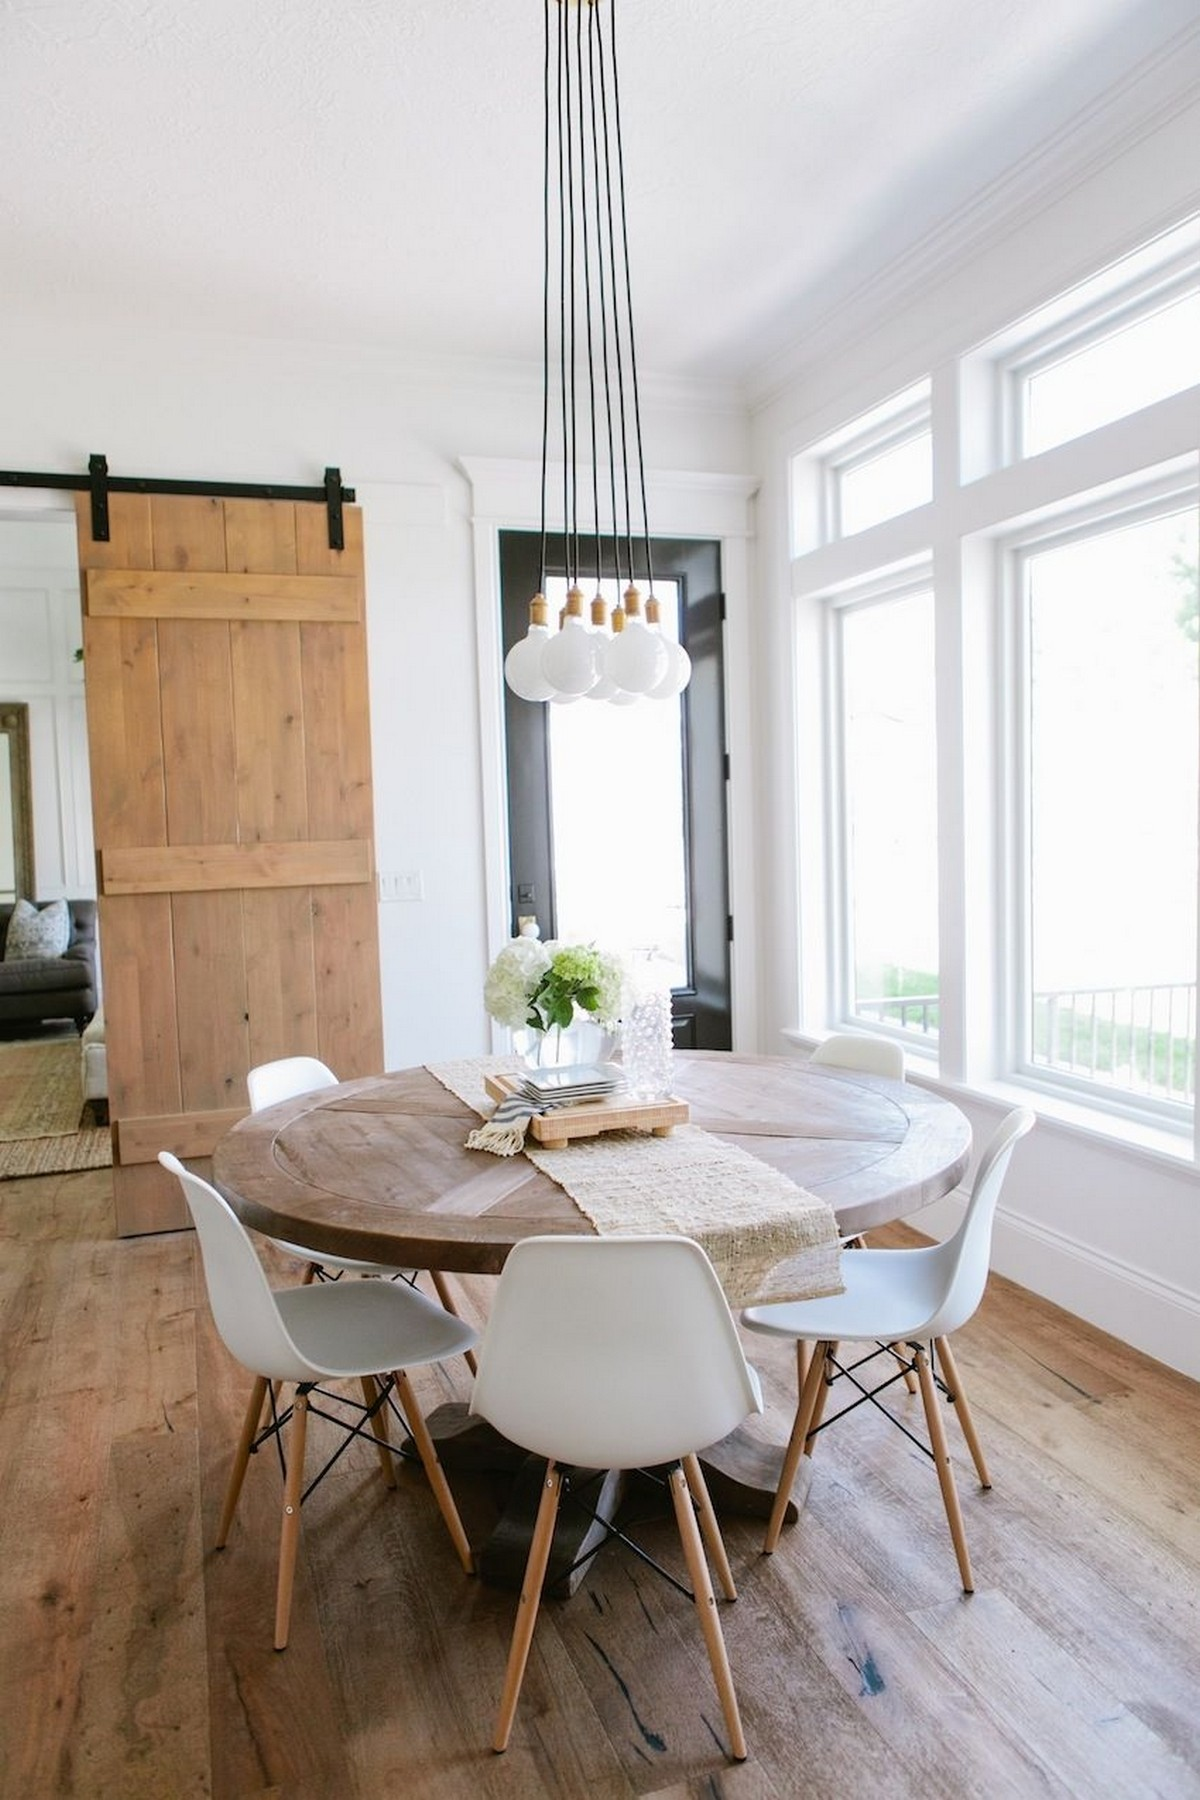 Modern Dining Room Inspirations To Look For in 2019 modern dining room Modern Dining Room Inspirations To Look For in 2019 2